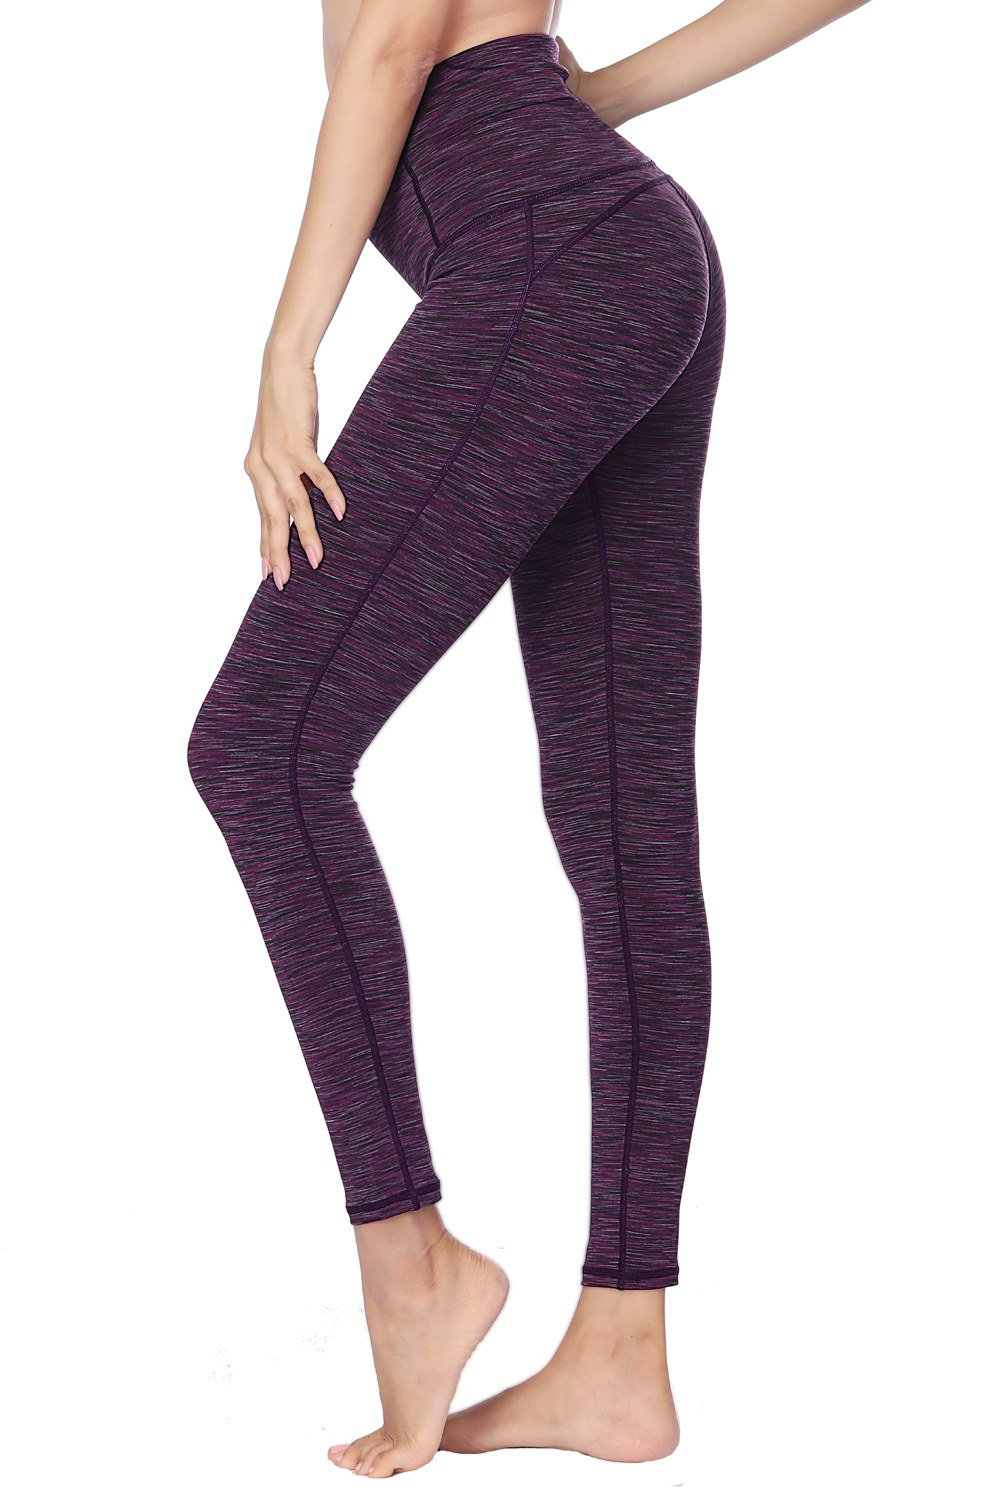 Dragon Fit Compression Yoga Pants Power Stretch Workout Leggings with High Waist Tummy Control (Medium, Ankle-Purple)